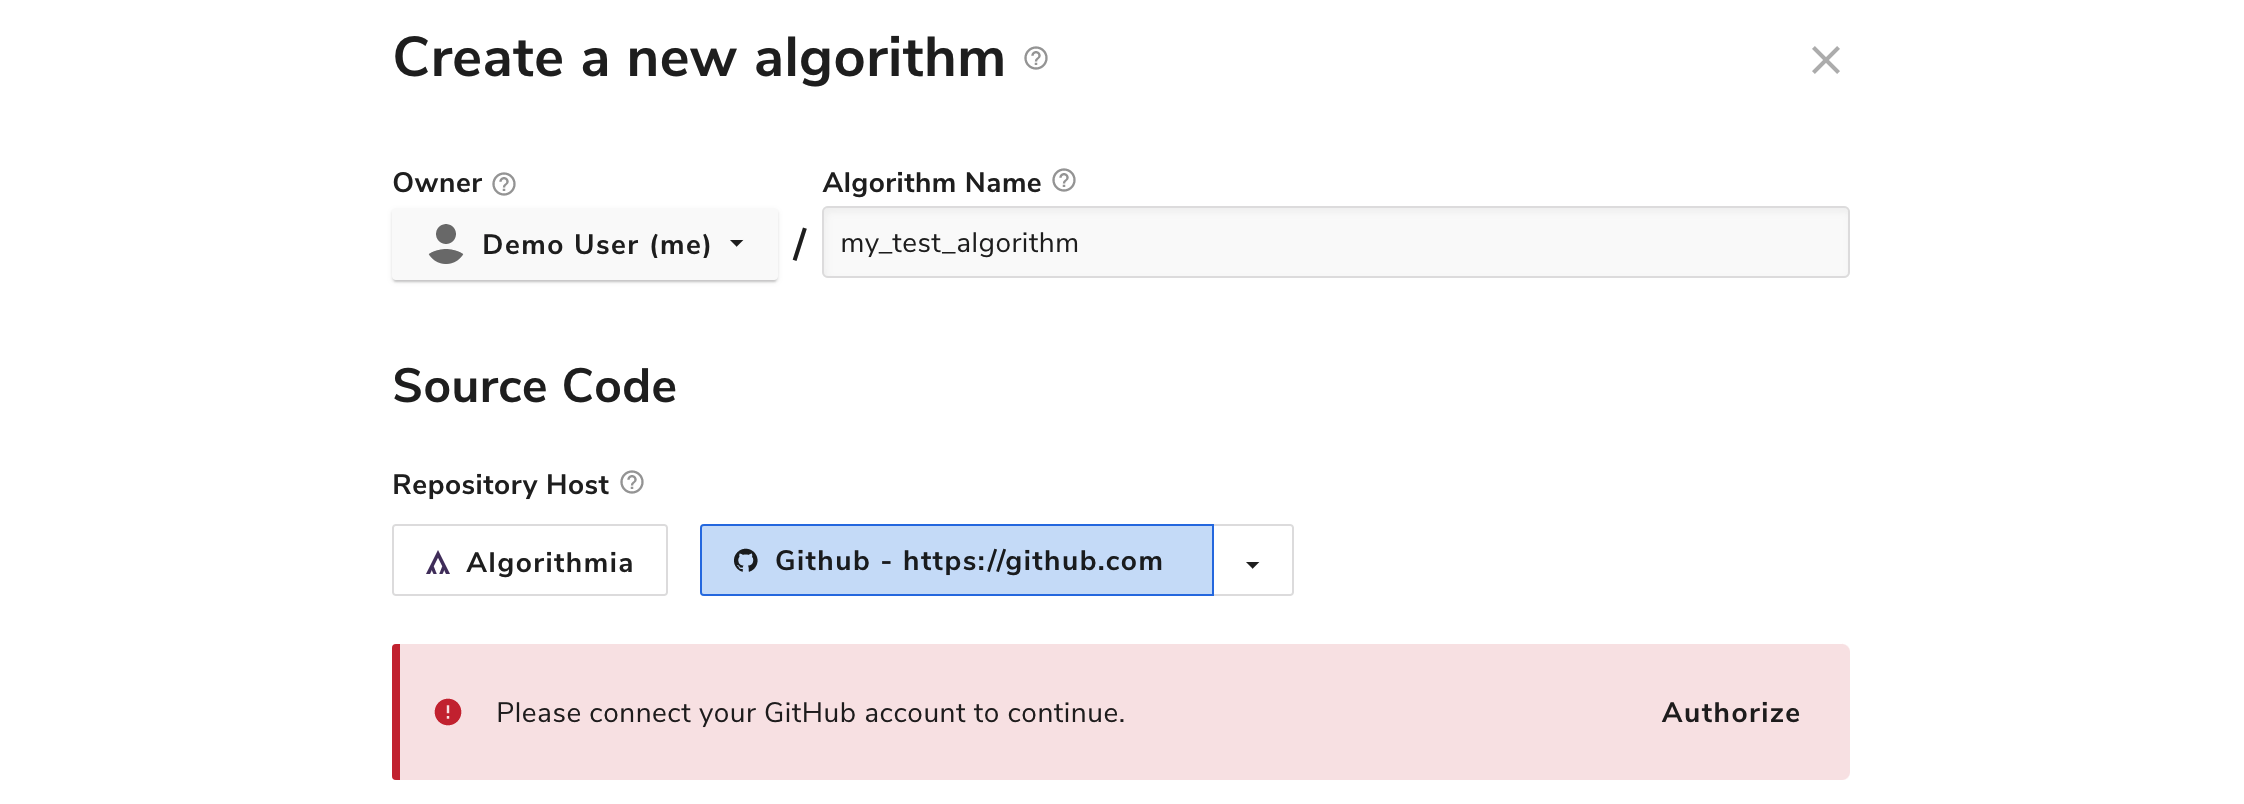 Authorization prompt for GitHub repository host